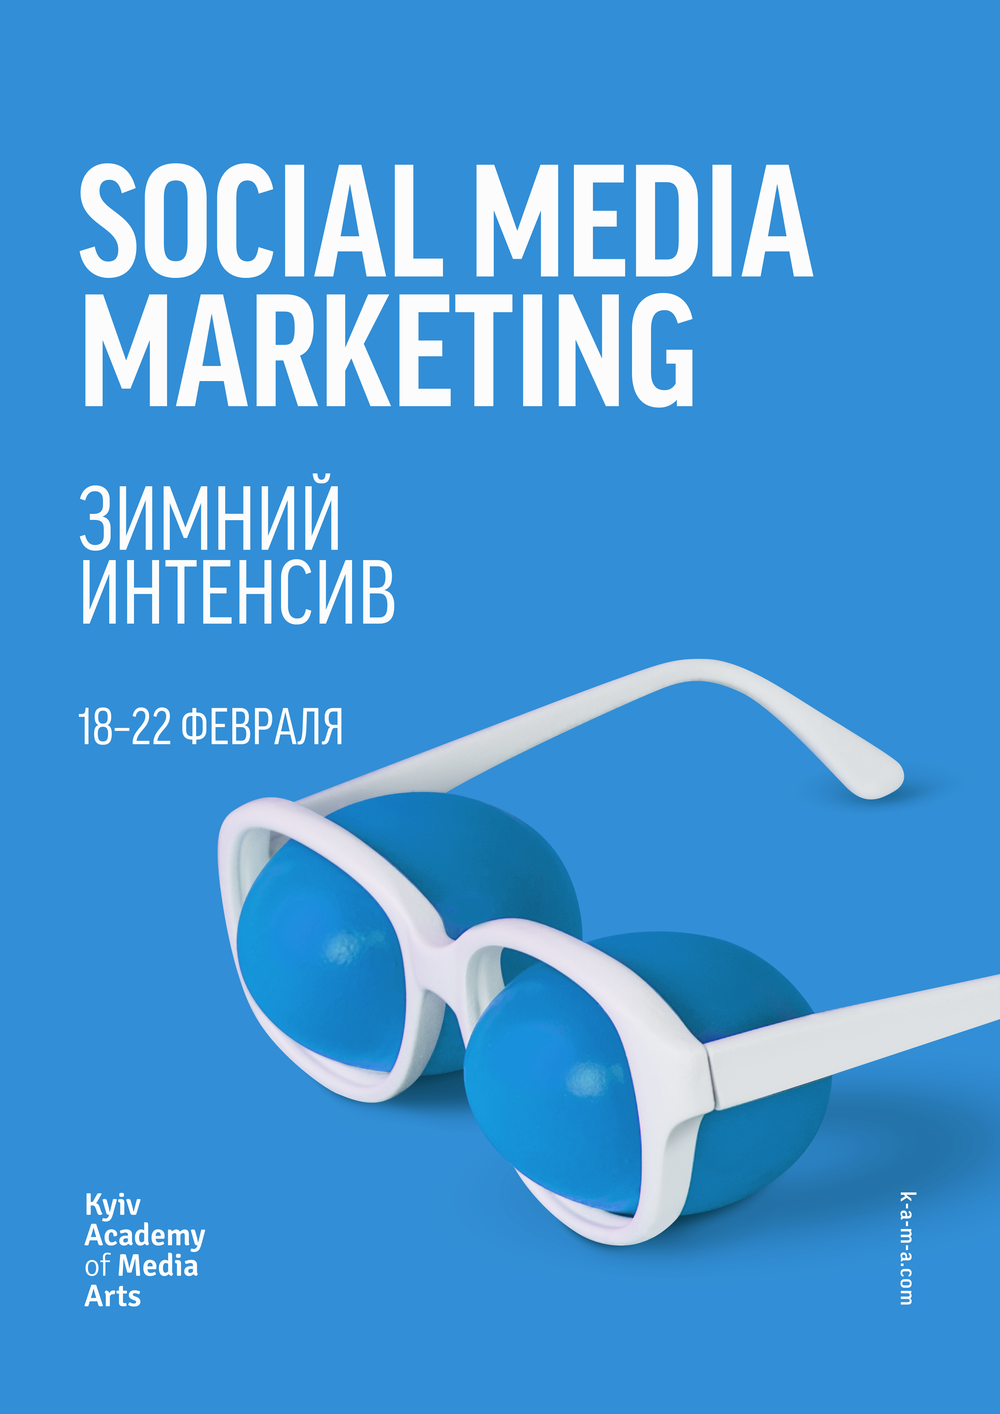 smm19_poster.png